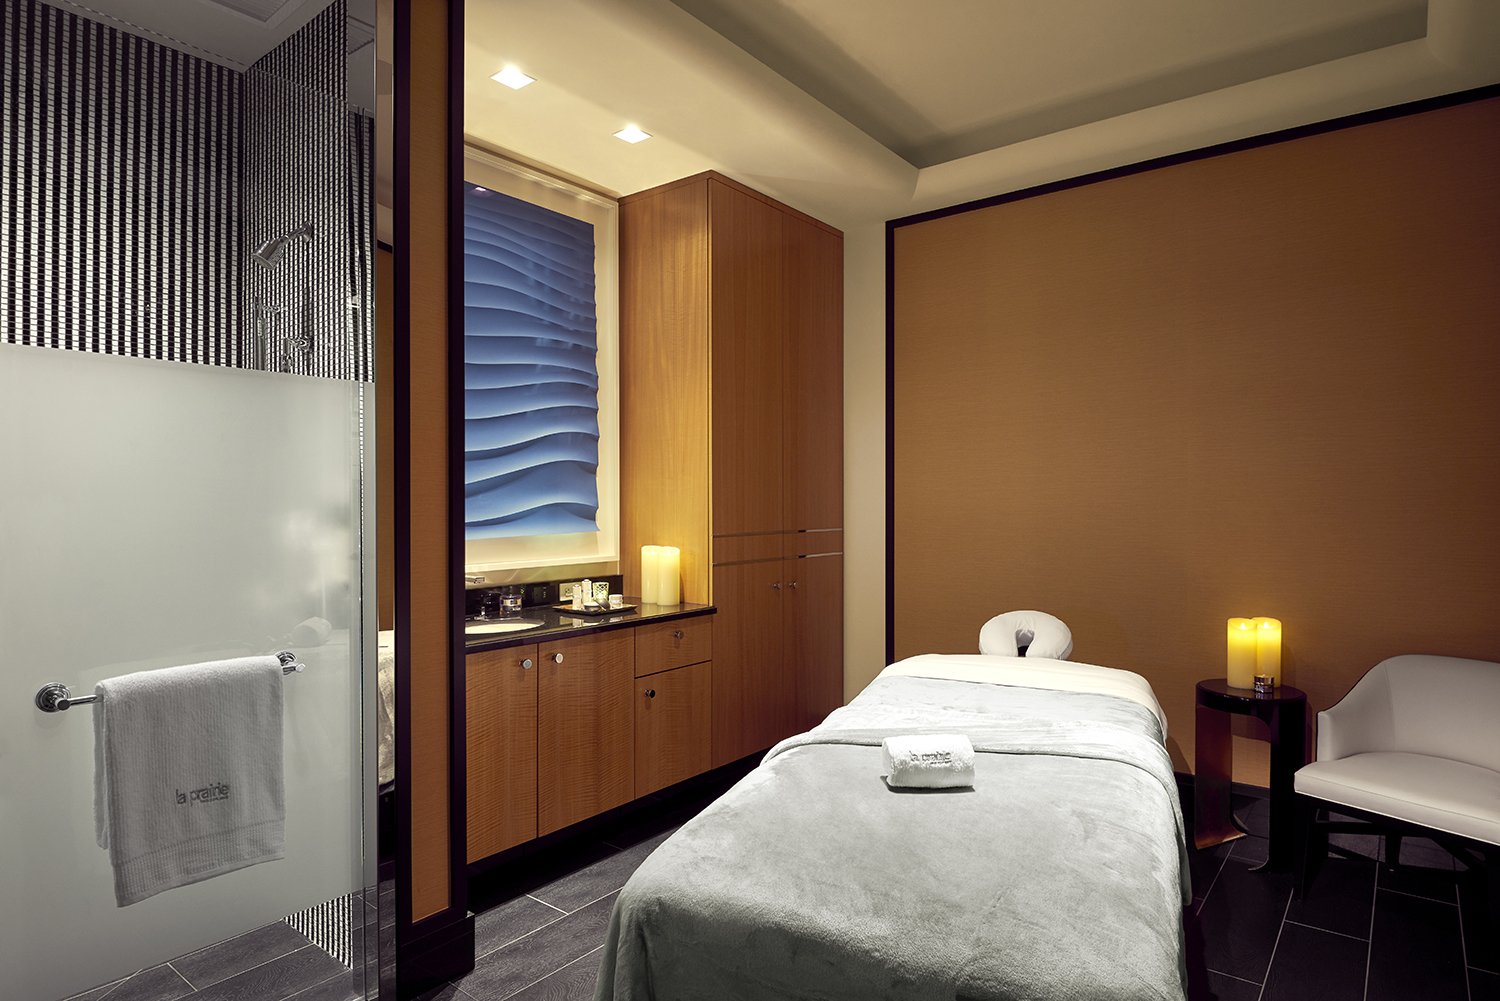 A treatment room at the spa.